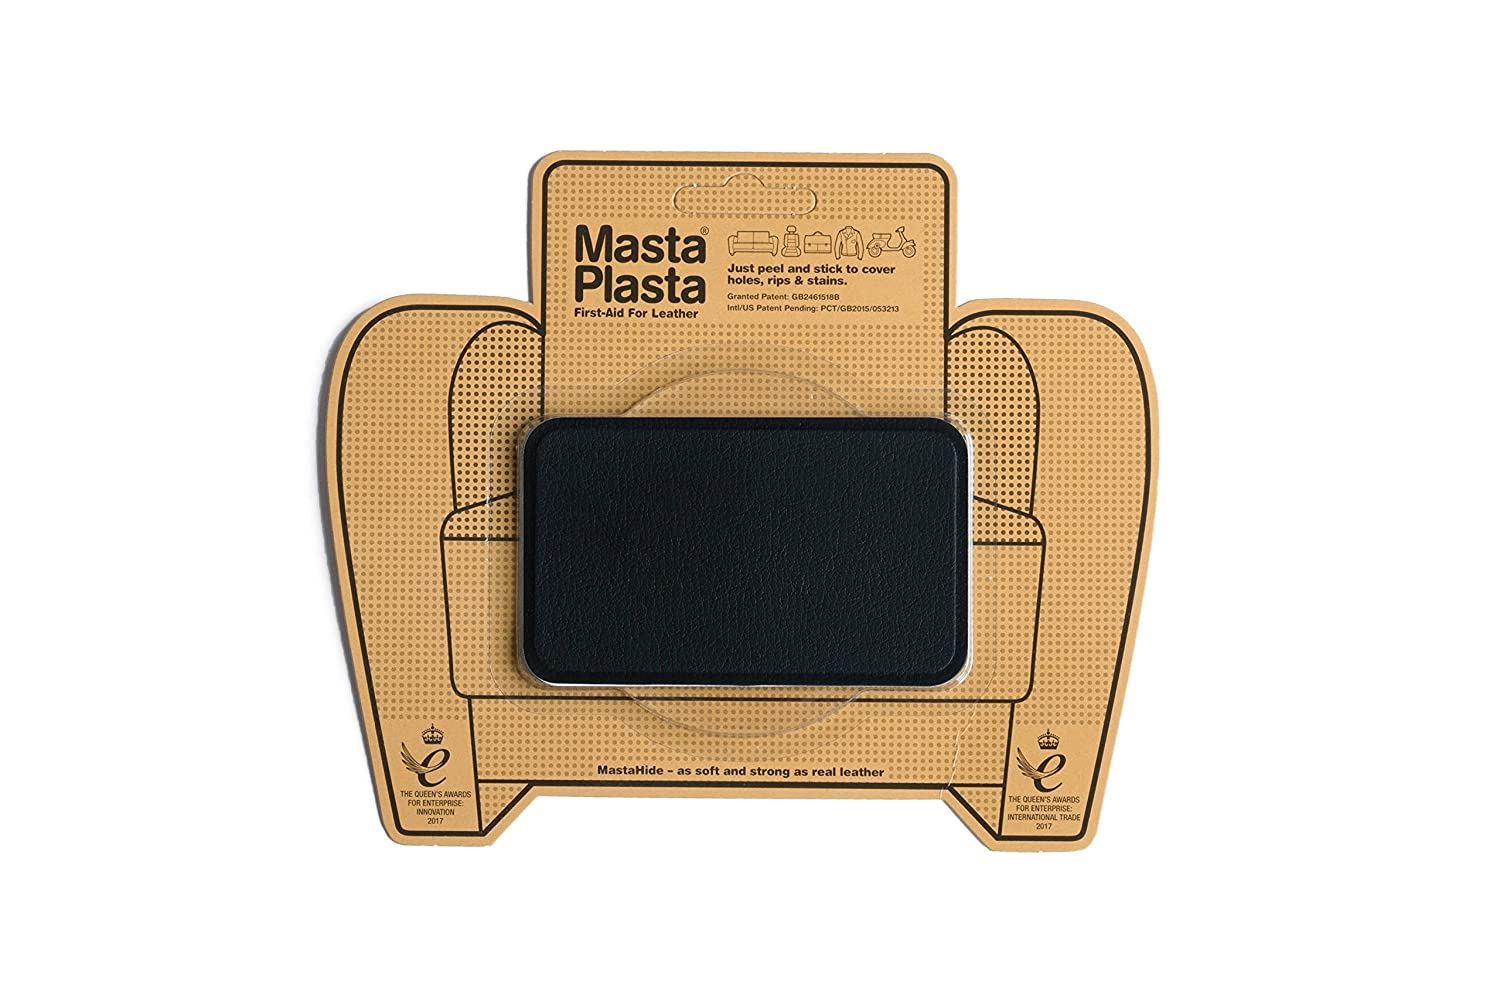 Black MastaPlasta Self-Adhesive Leather Repair Patches. Choose size/design. First-aid for sofas, car seats, handbags, jackets etc. (BLACK SMALL CIRCLE 5cmx5cm) MPSCIRCLEBL